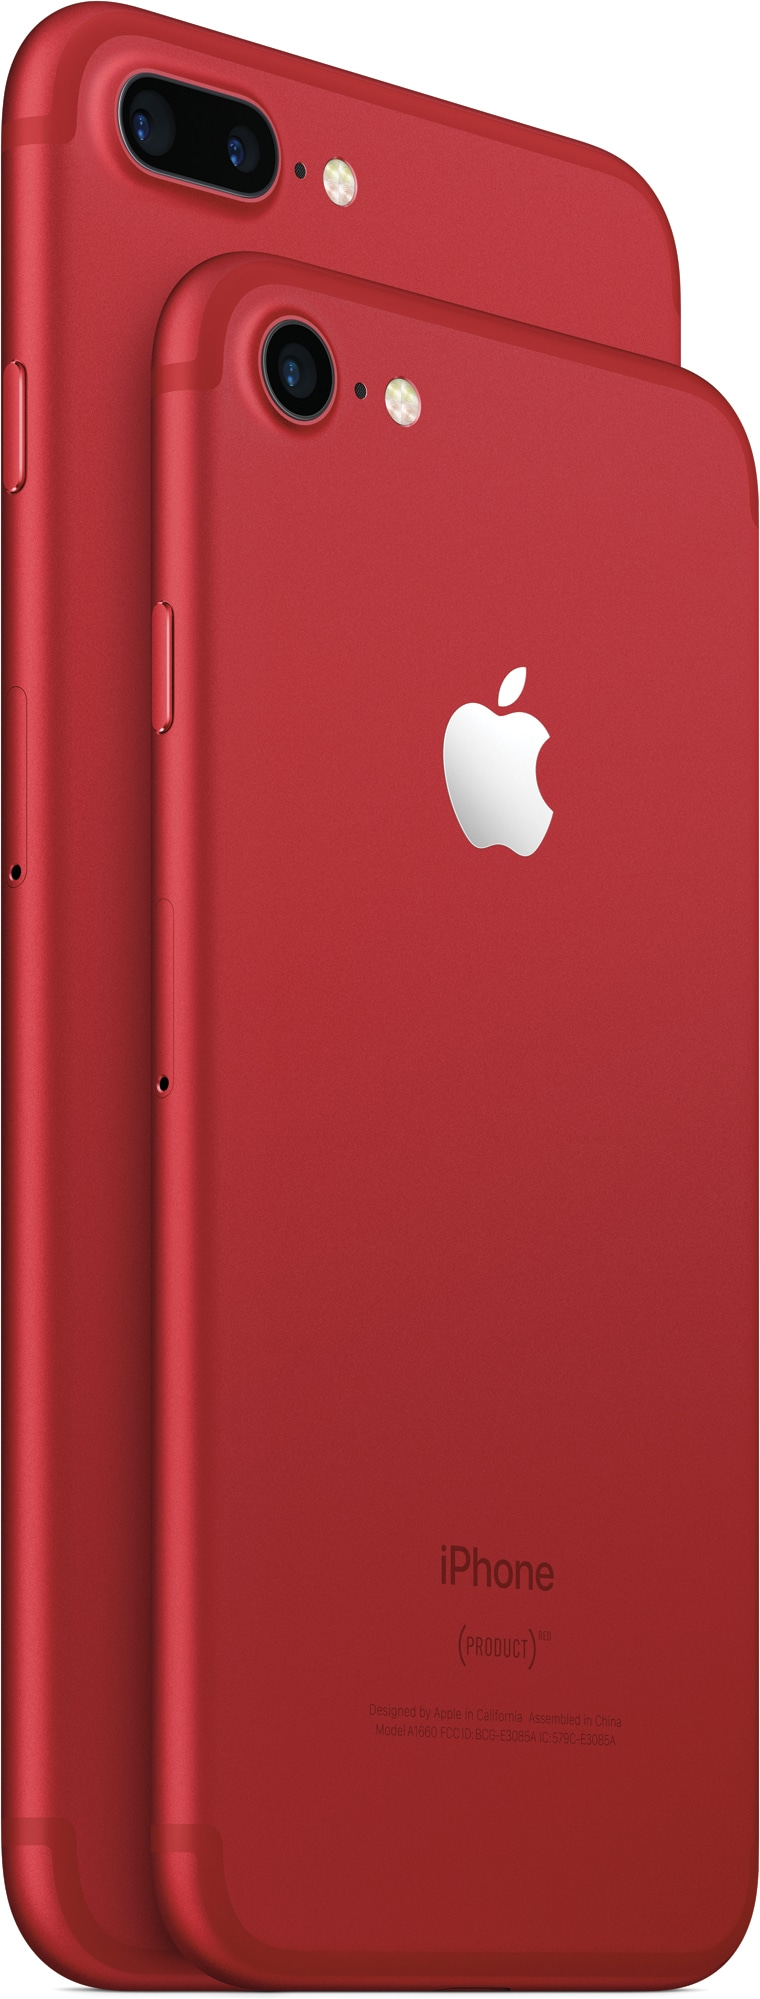 iPhones 7 e 7 Plus (PRODUCT)RED inclinados